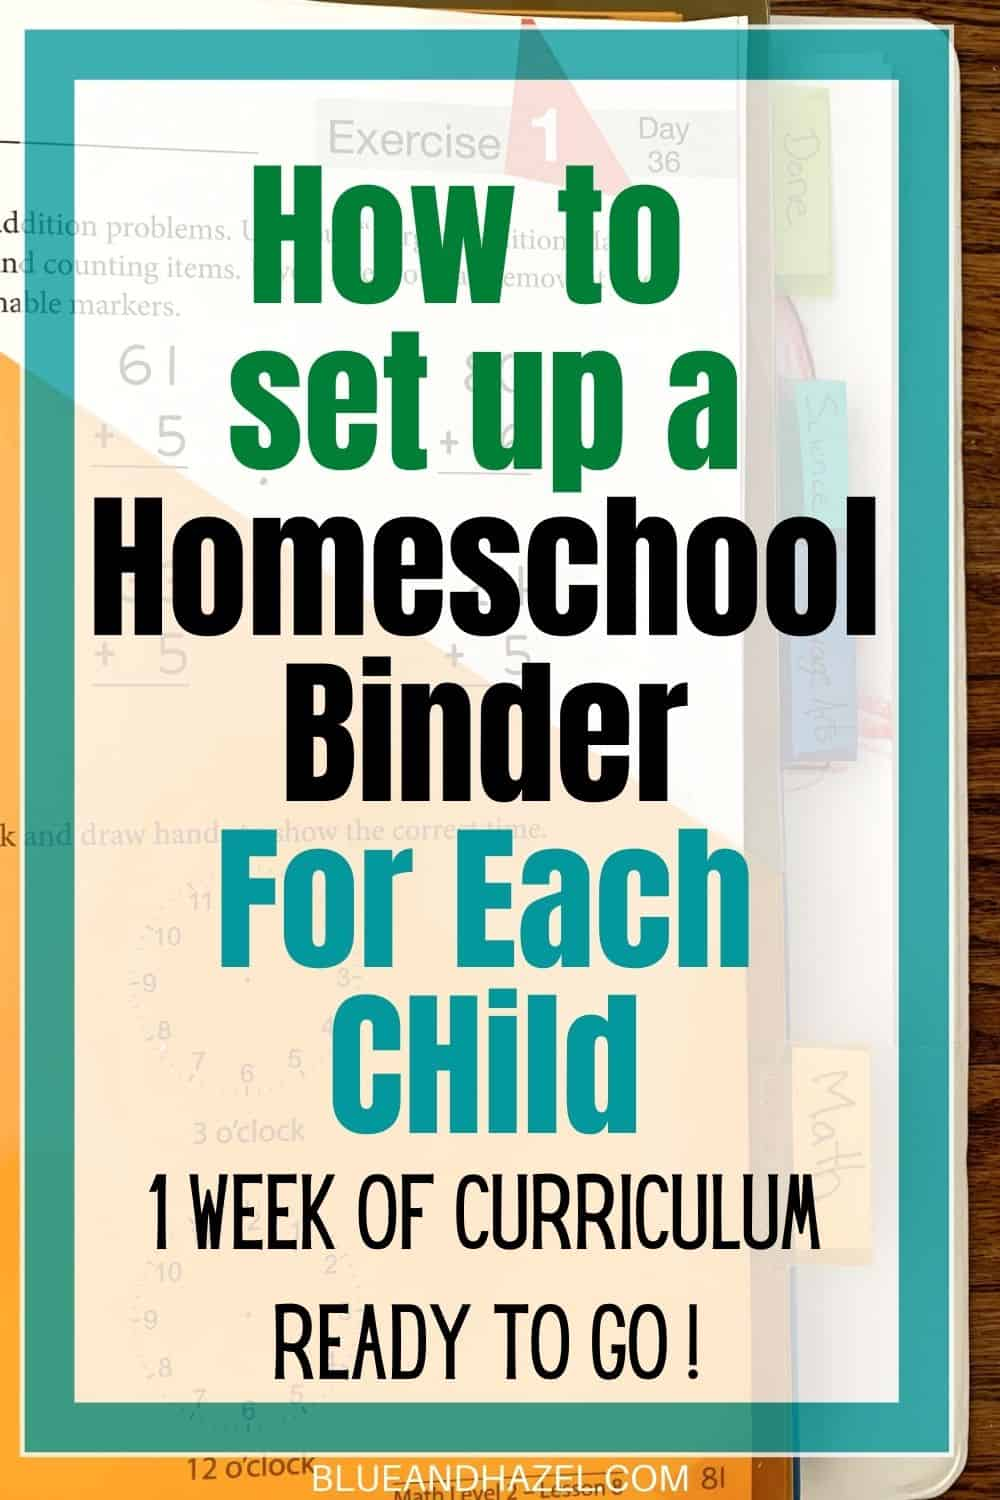 How to organize homeschool curriculum for each kid